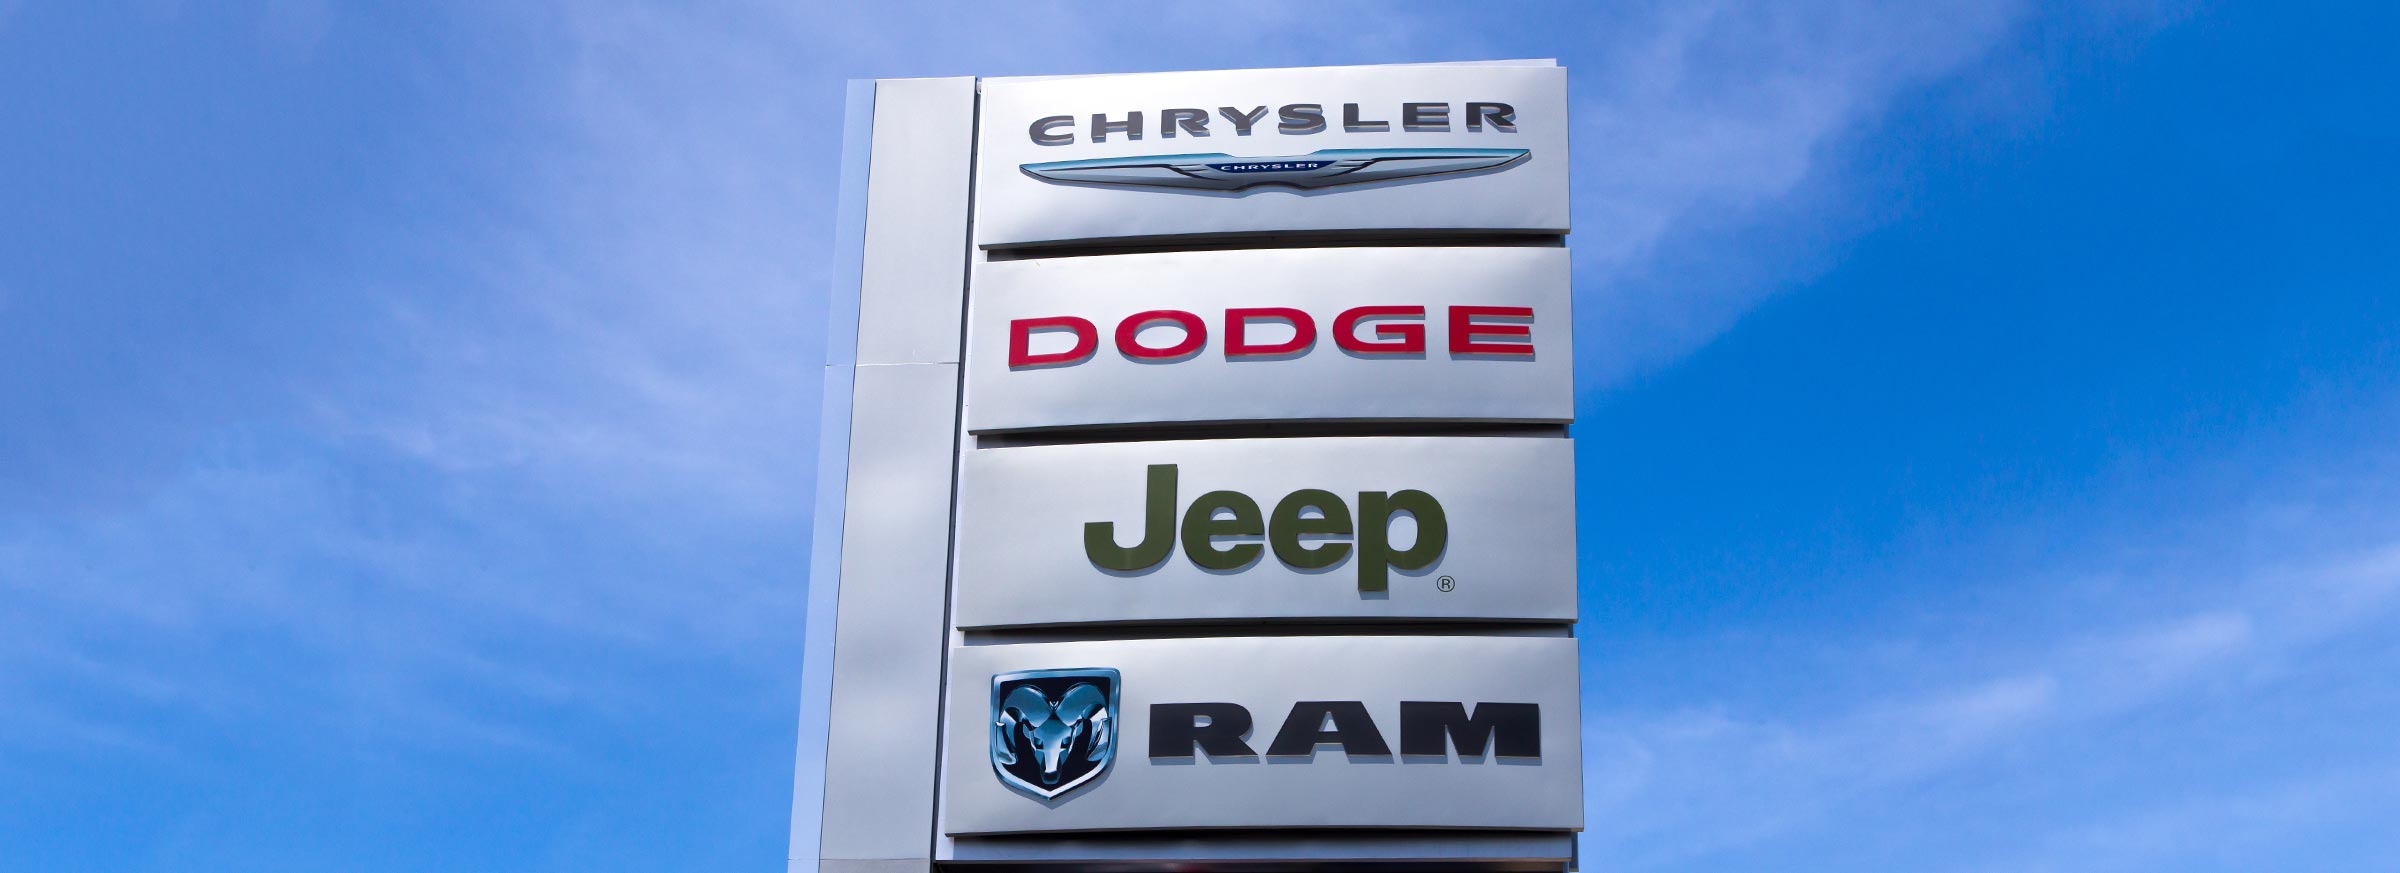 Arrigo Dodge Chrysler Jeep RAM Palm Beach